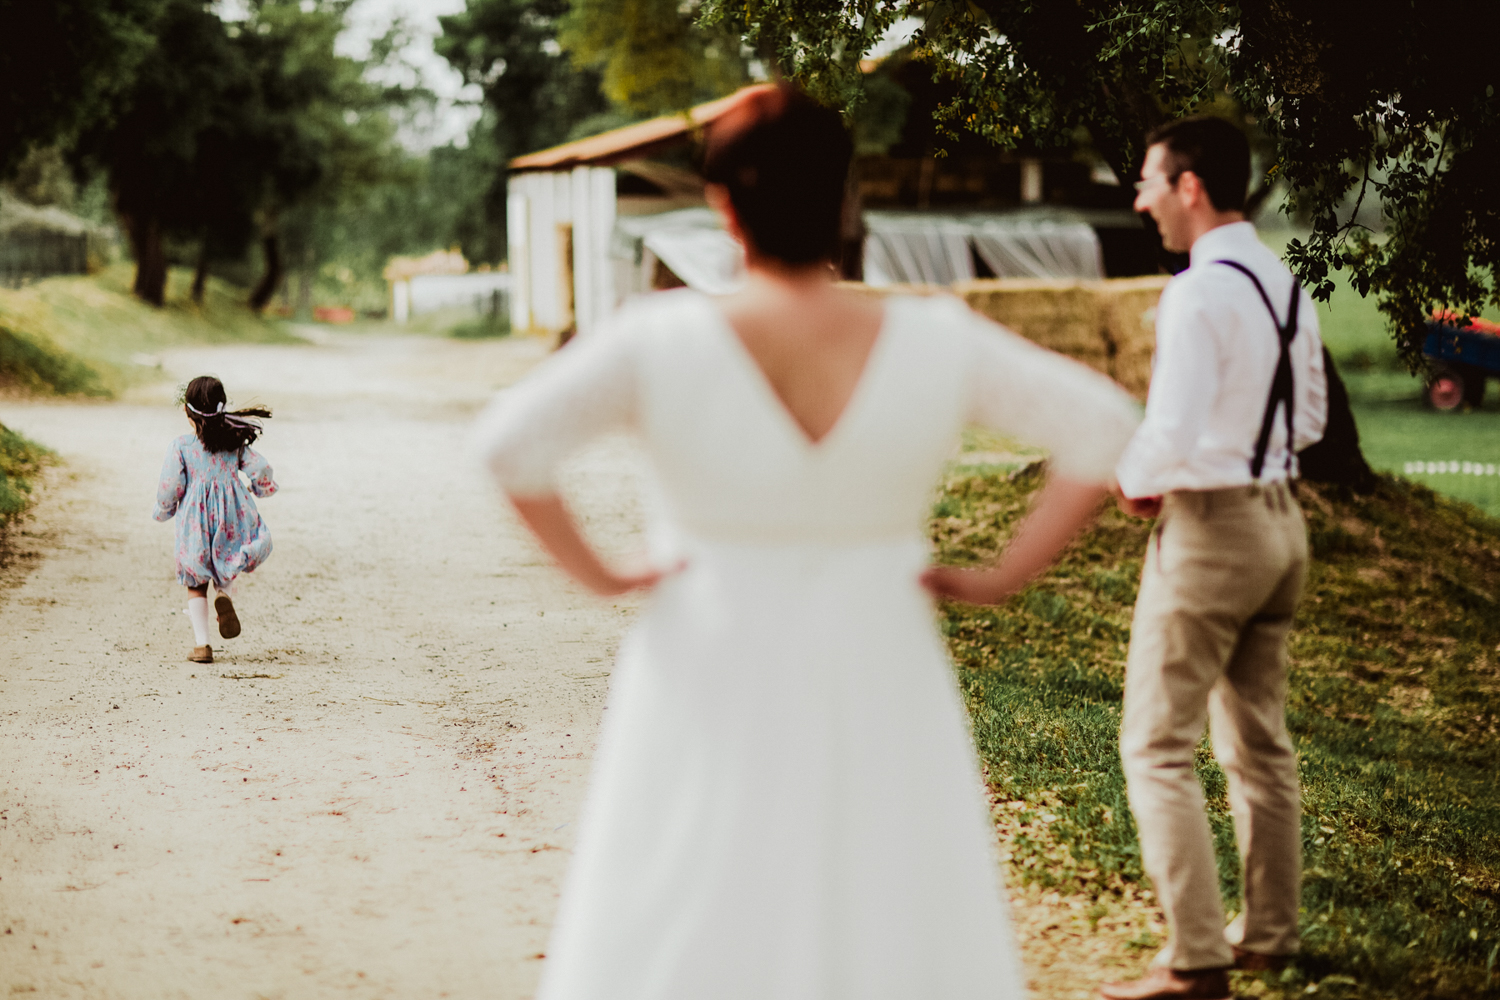 rural wedding portugal alentejo the framers wedding photography - 26